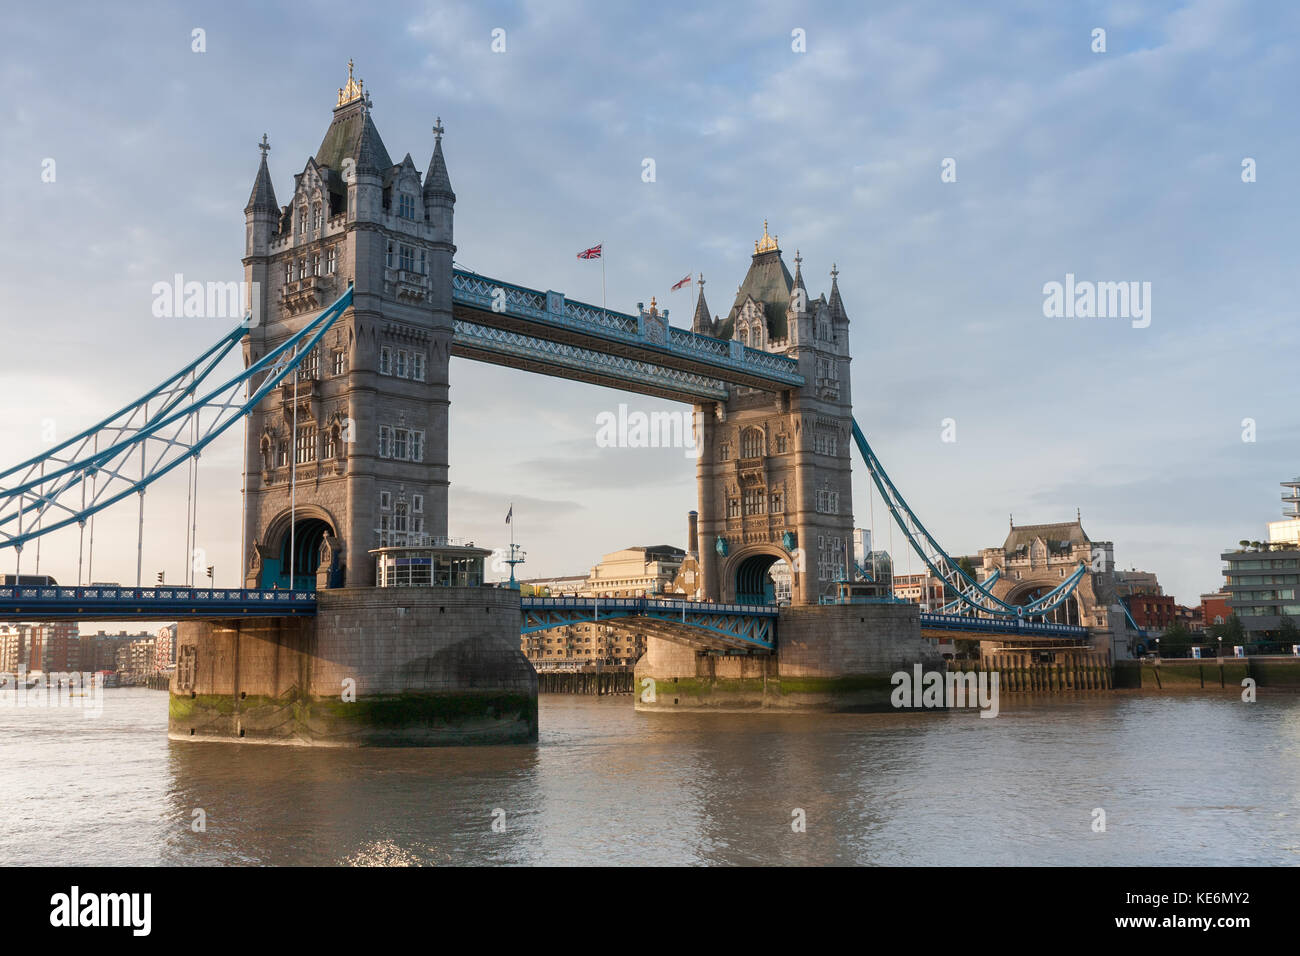 Tower Bridge in the morning, London, England. - Stock Image